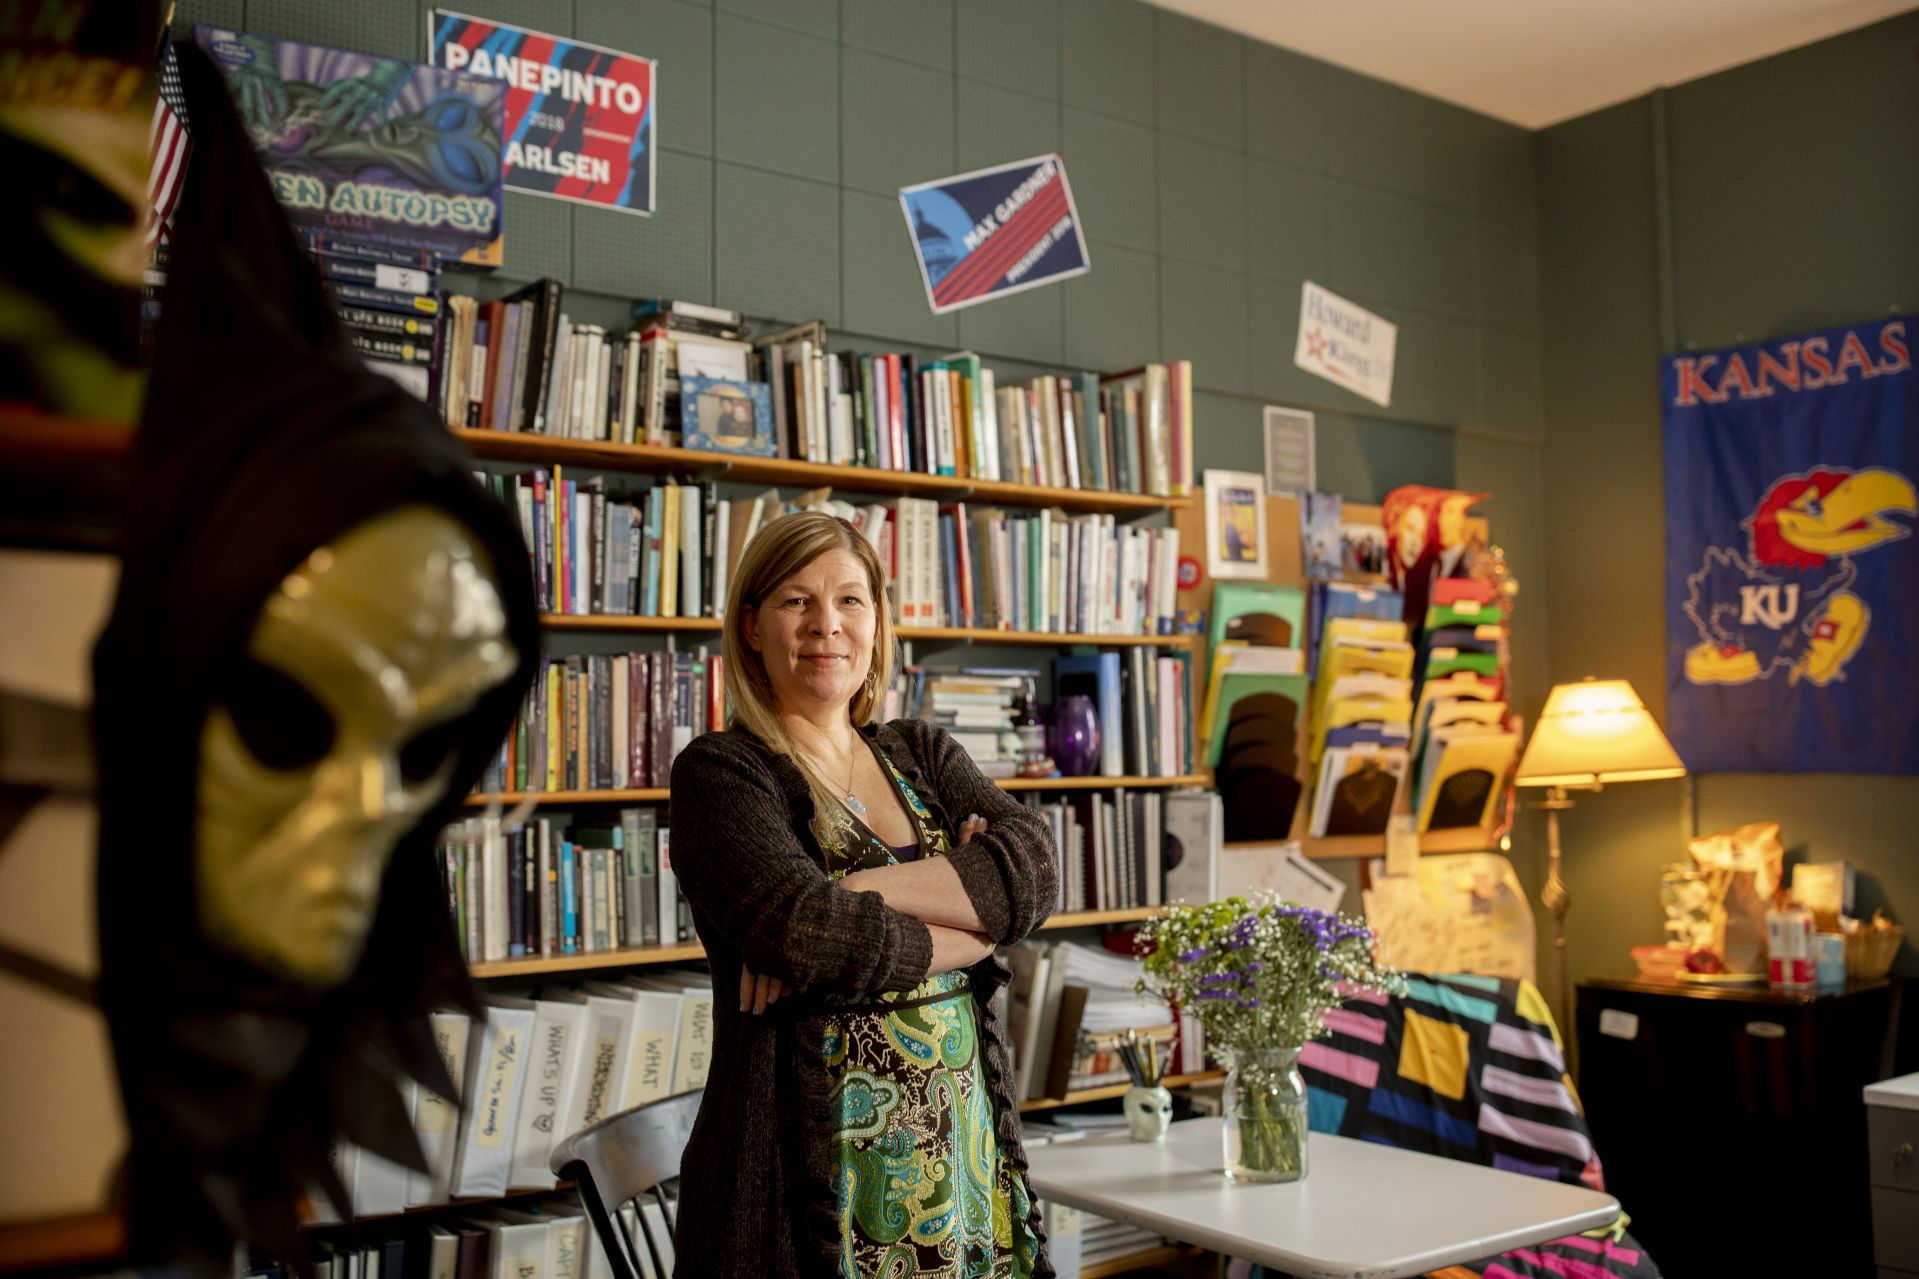 Associate Professor of Rhetoric, Film, and Screen Studies Stephanie Kelley-Romano in her Pettigrew Hall Office.